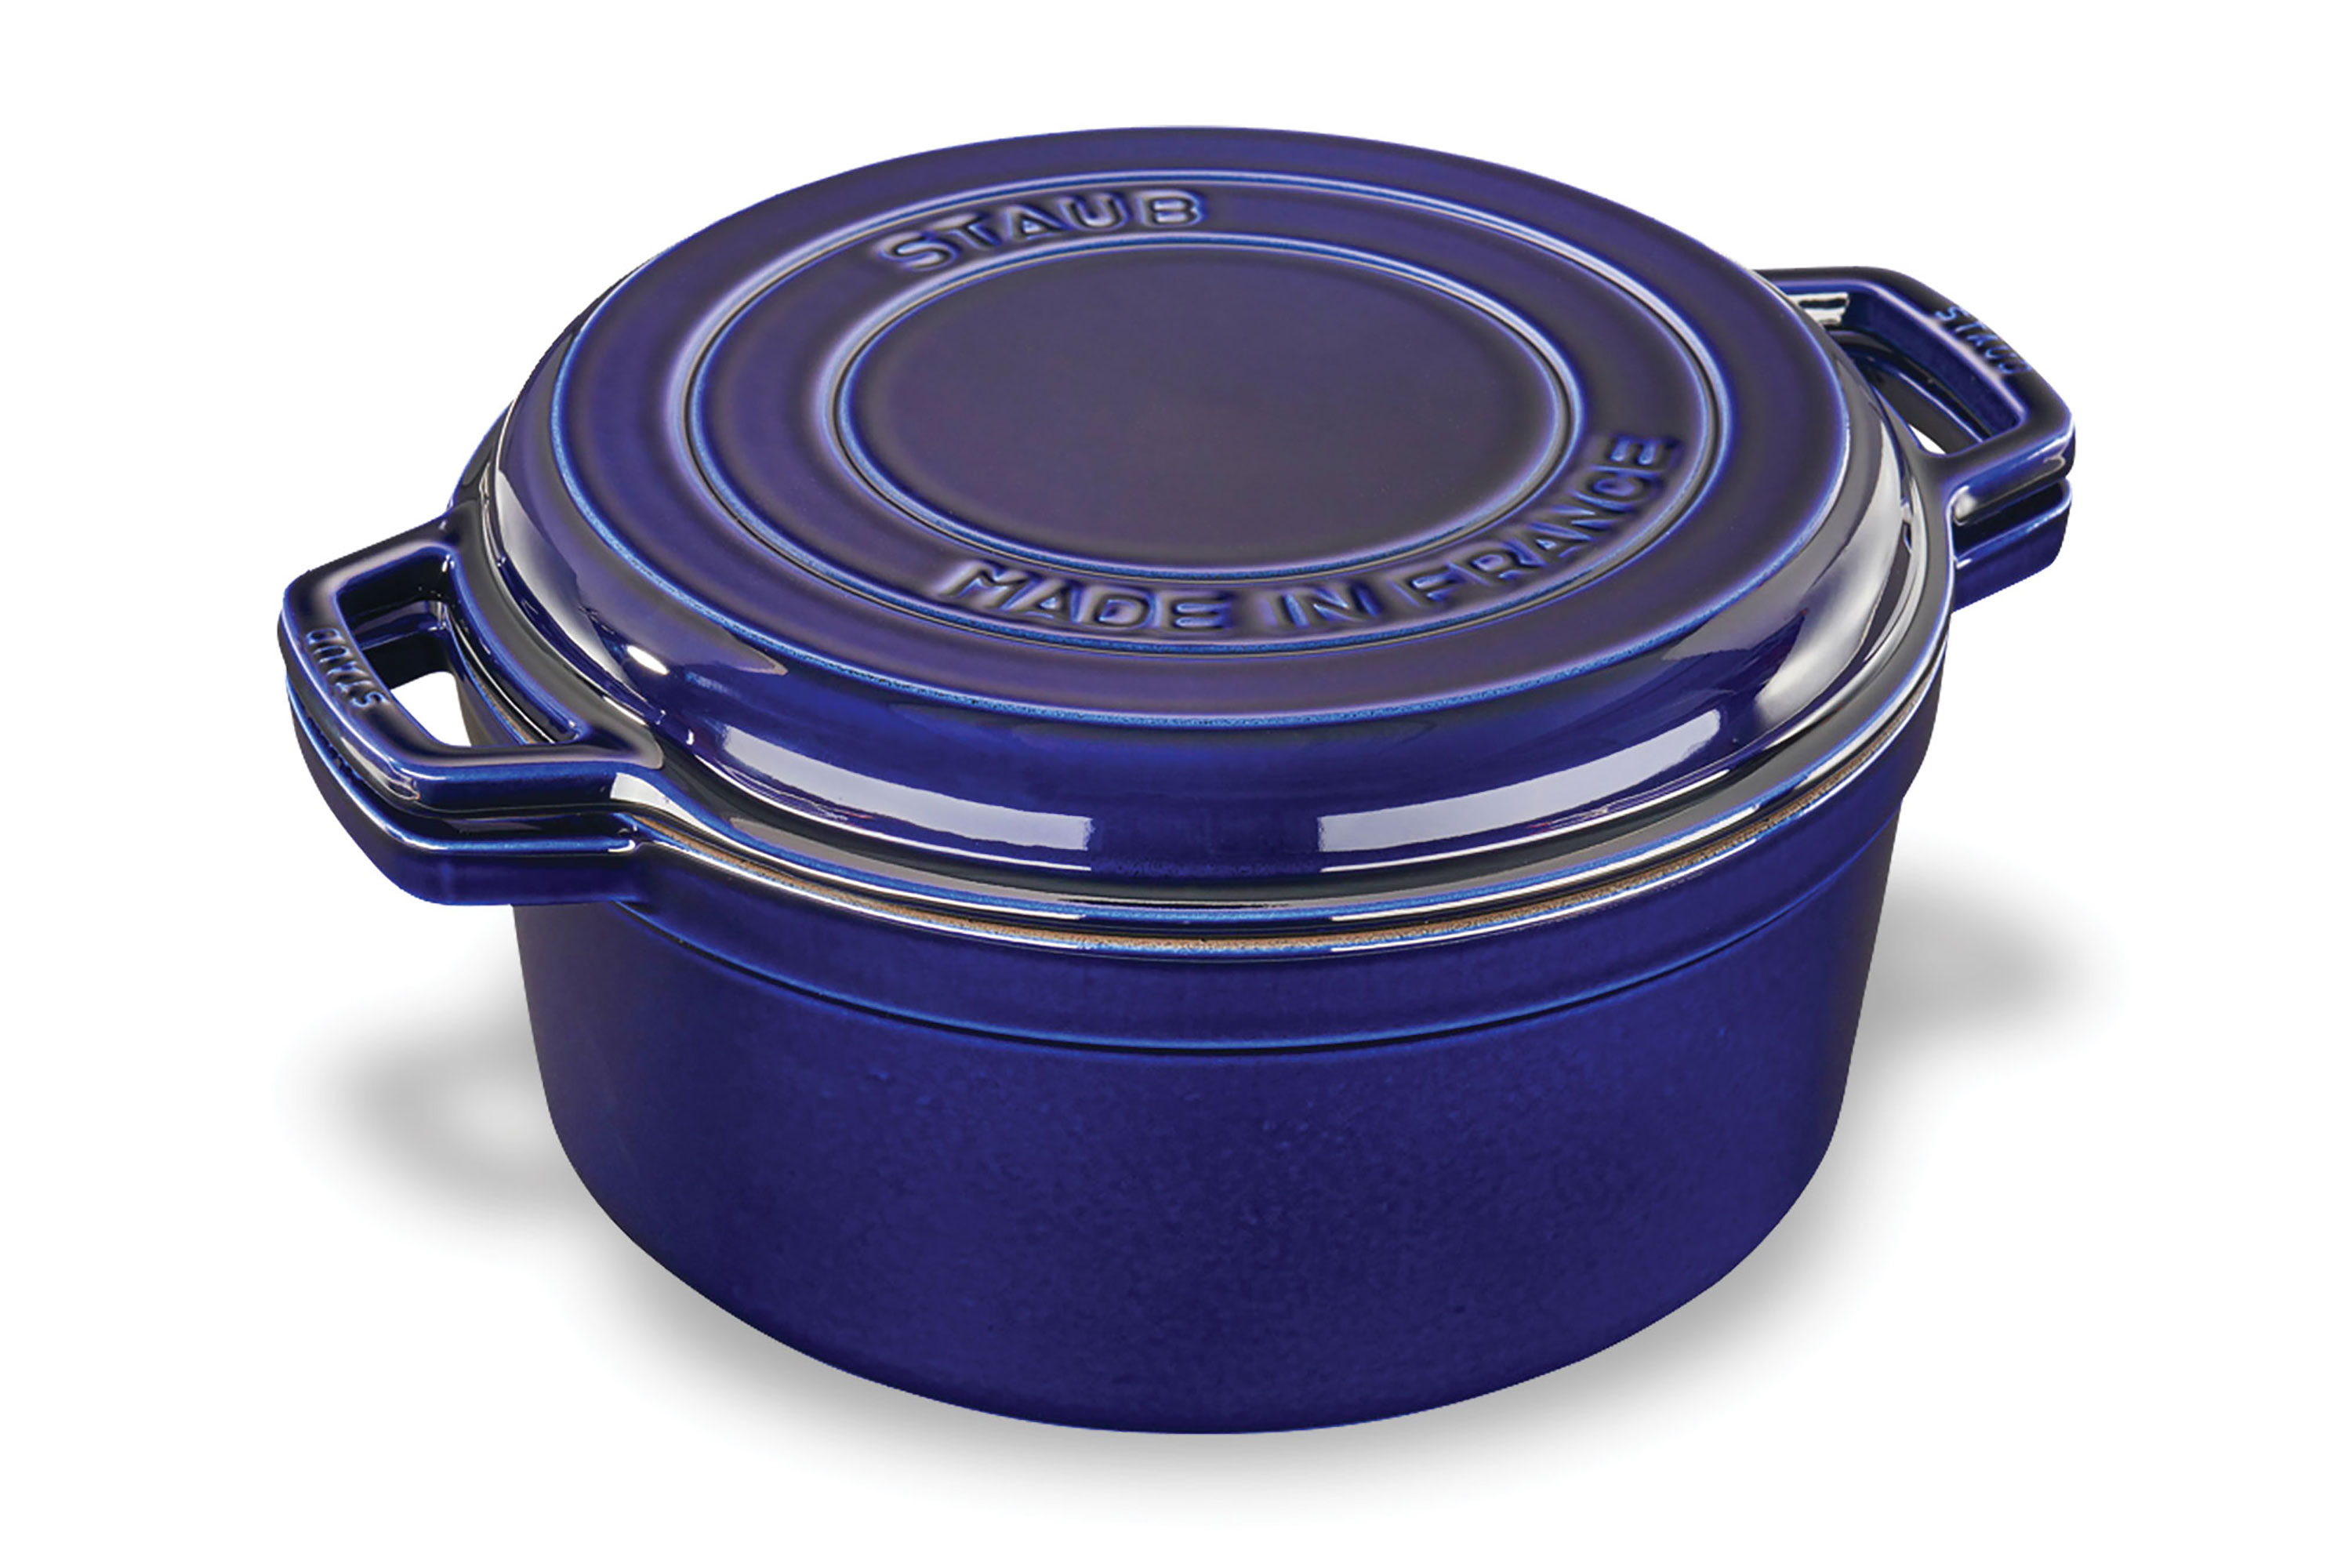 Staub Braise Amp Grill Round Dutch Oven With Grill Pan Lid